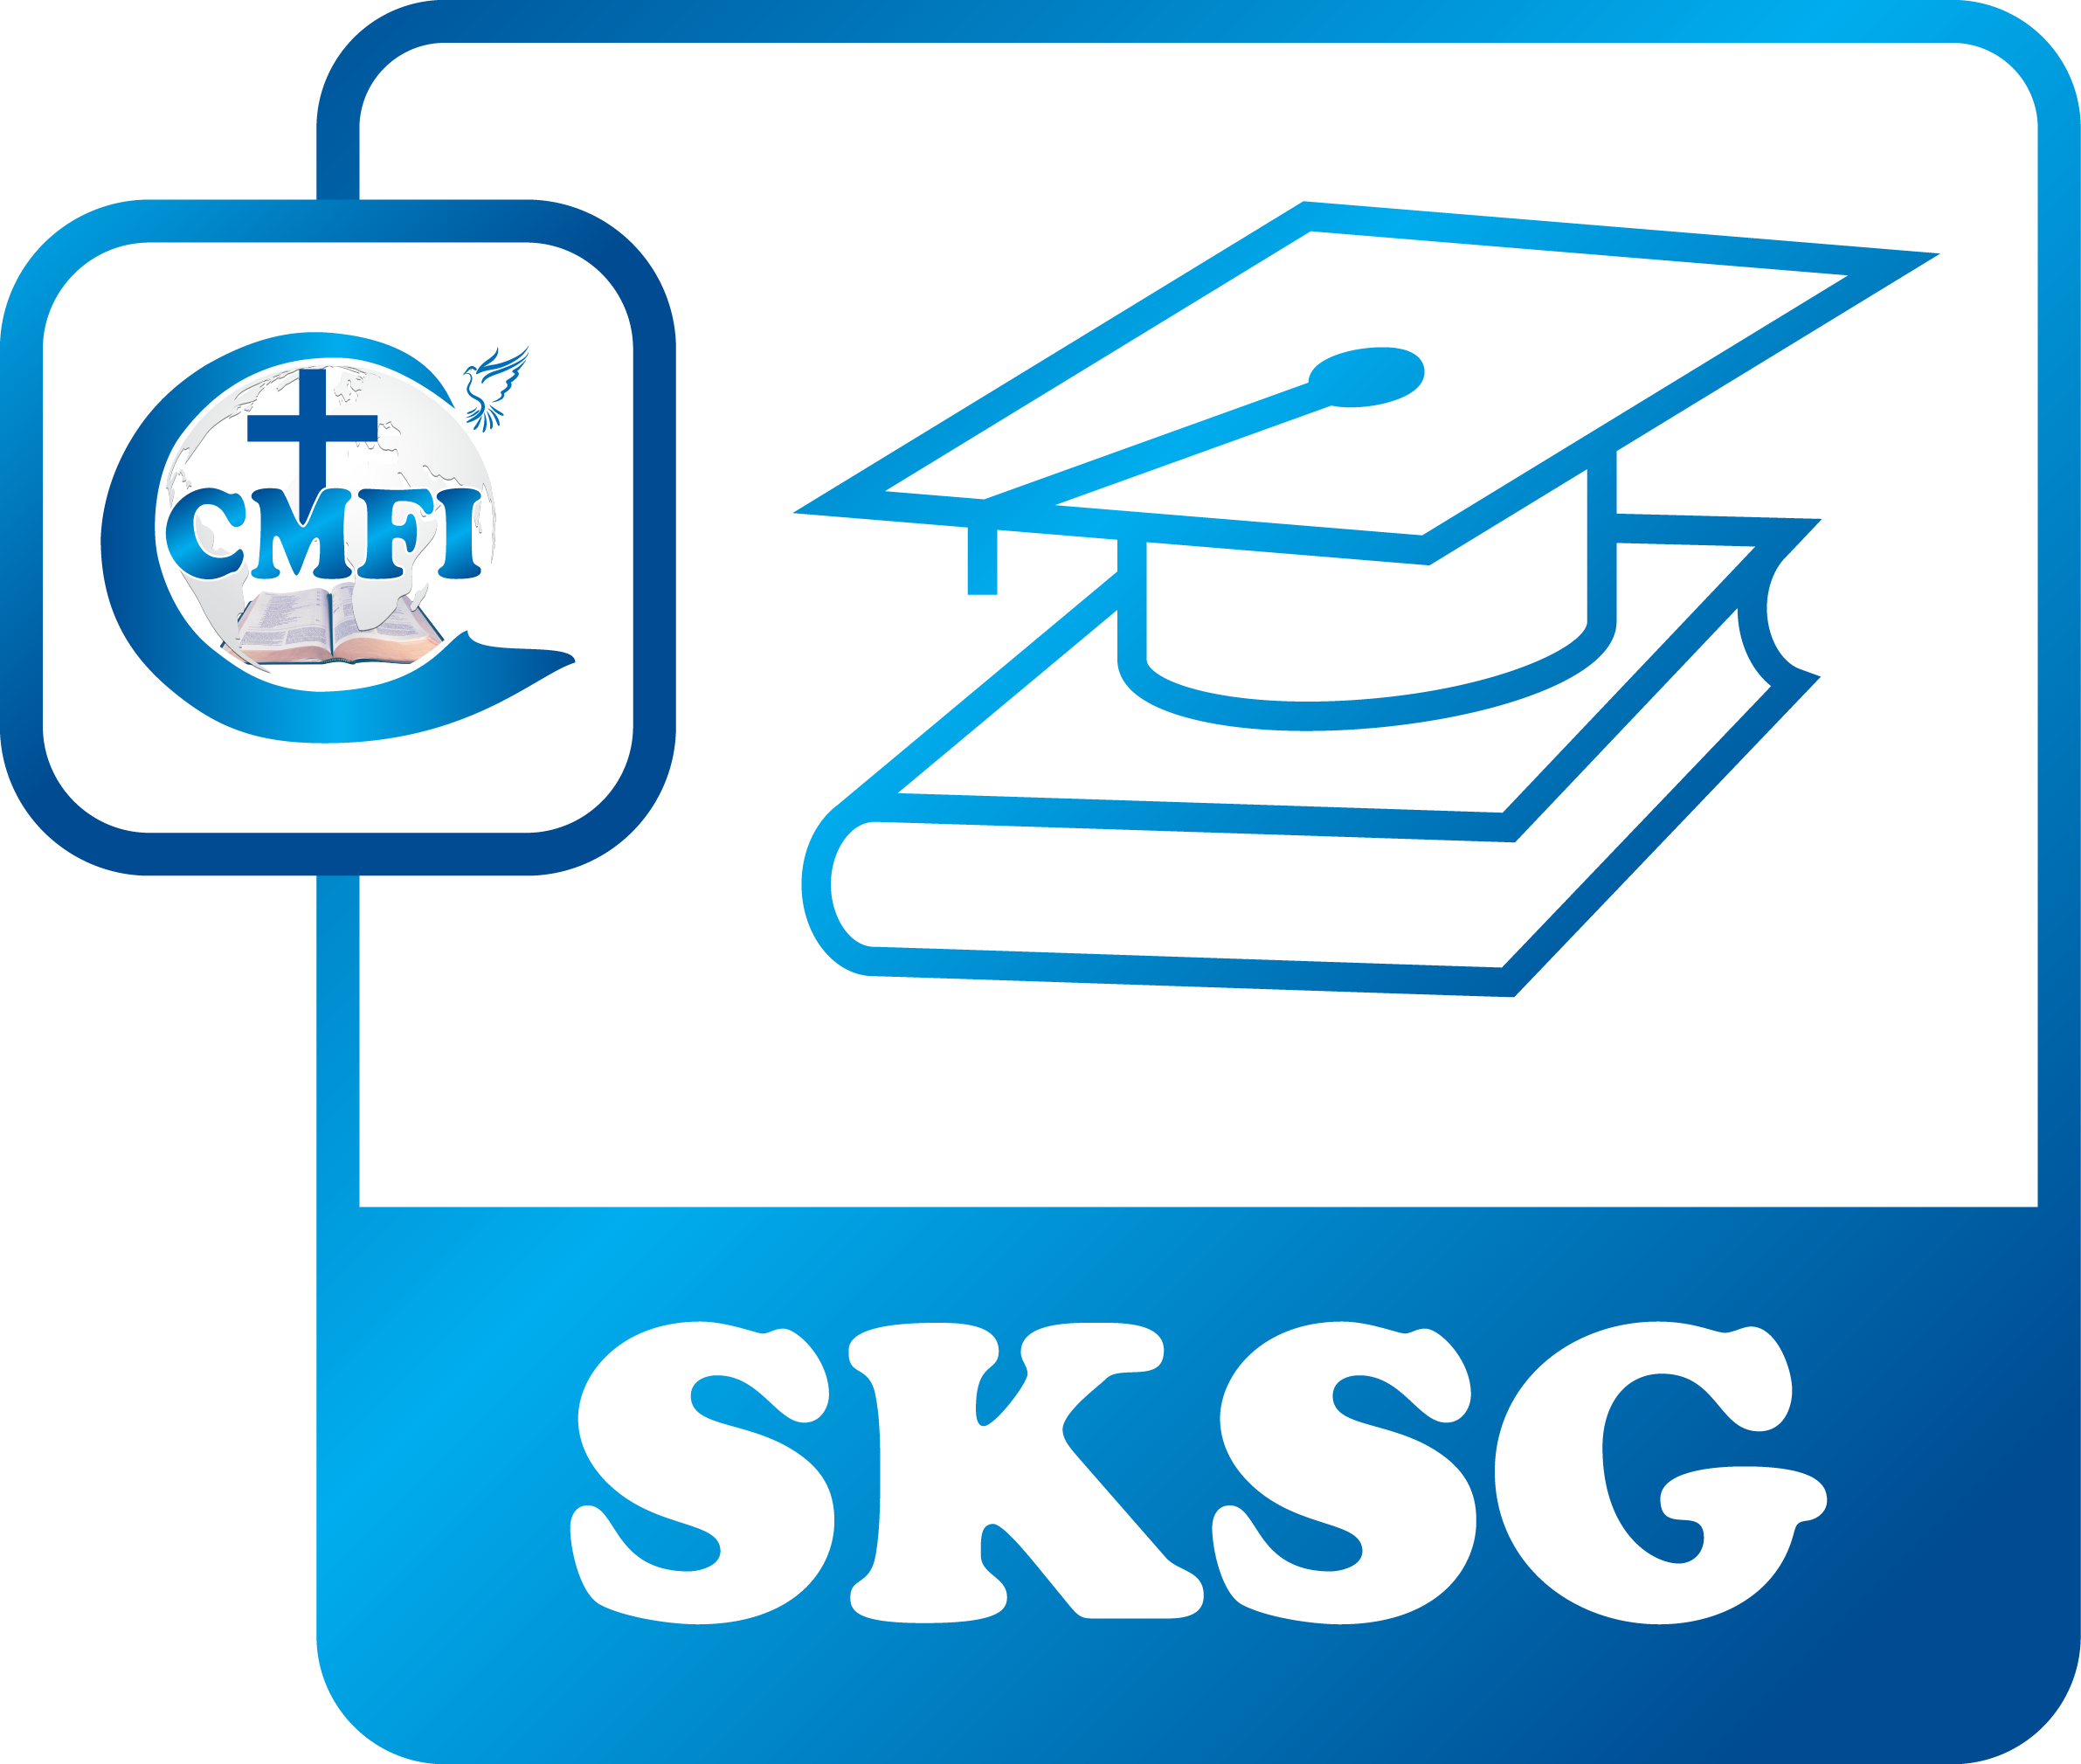 School of Knowing and Serving God